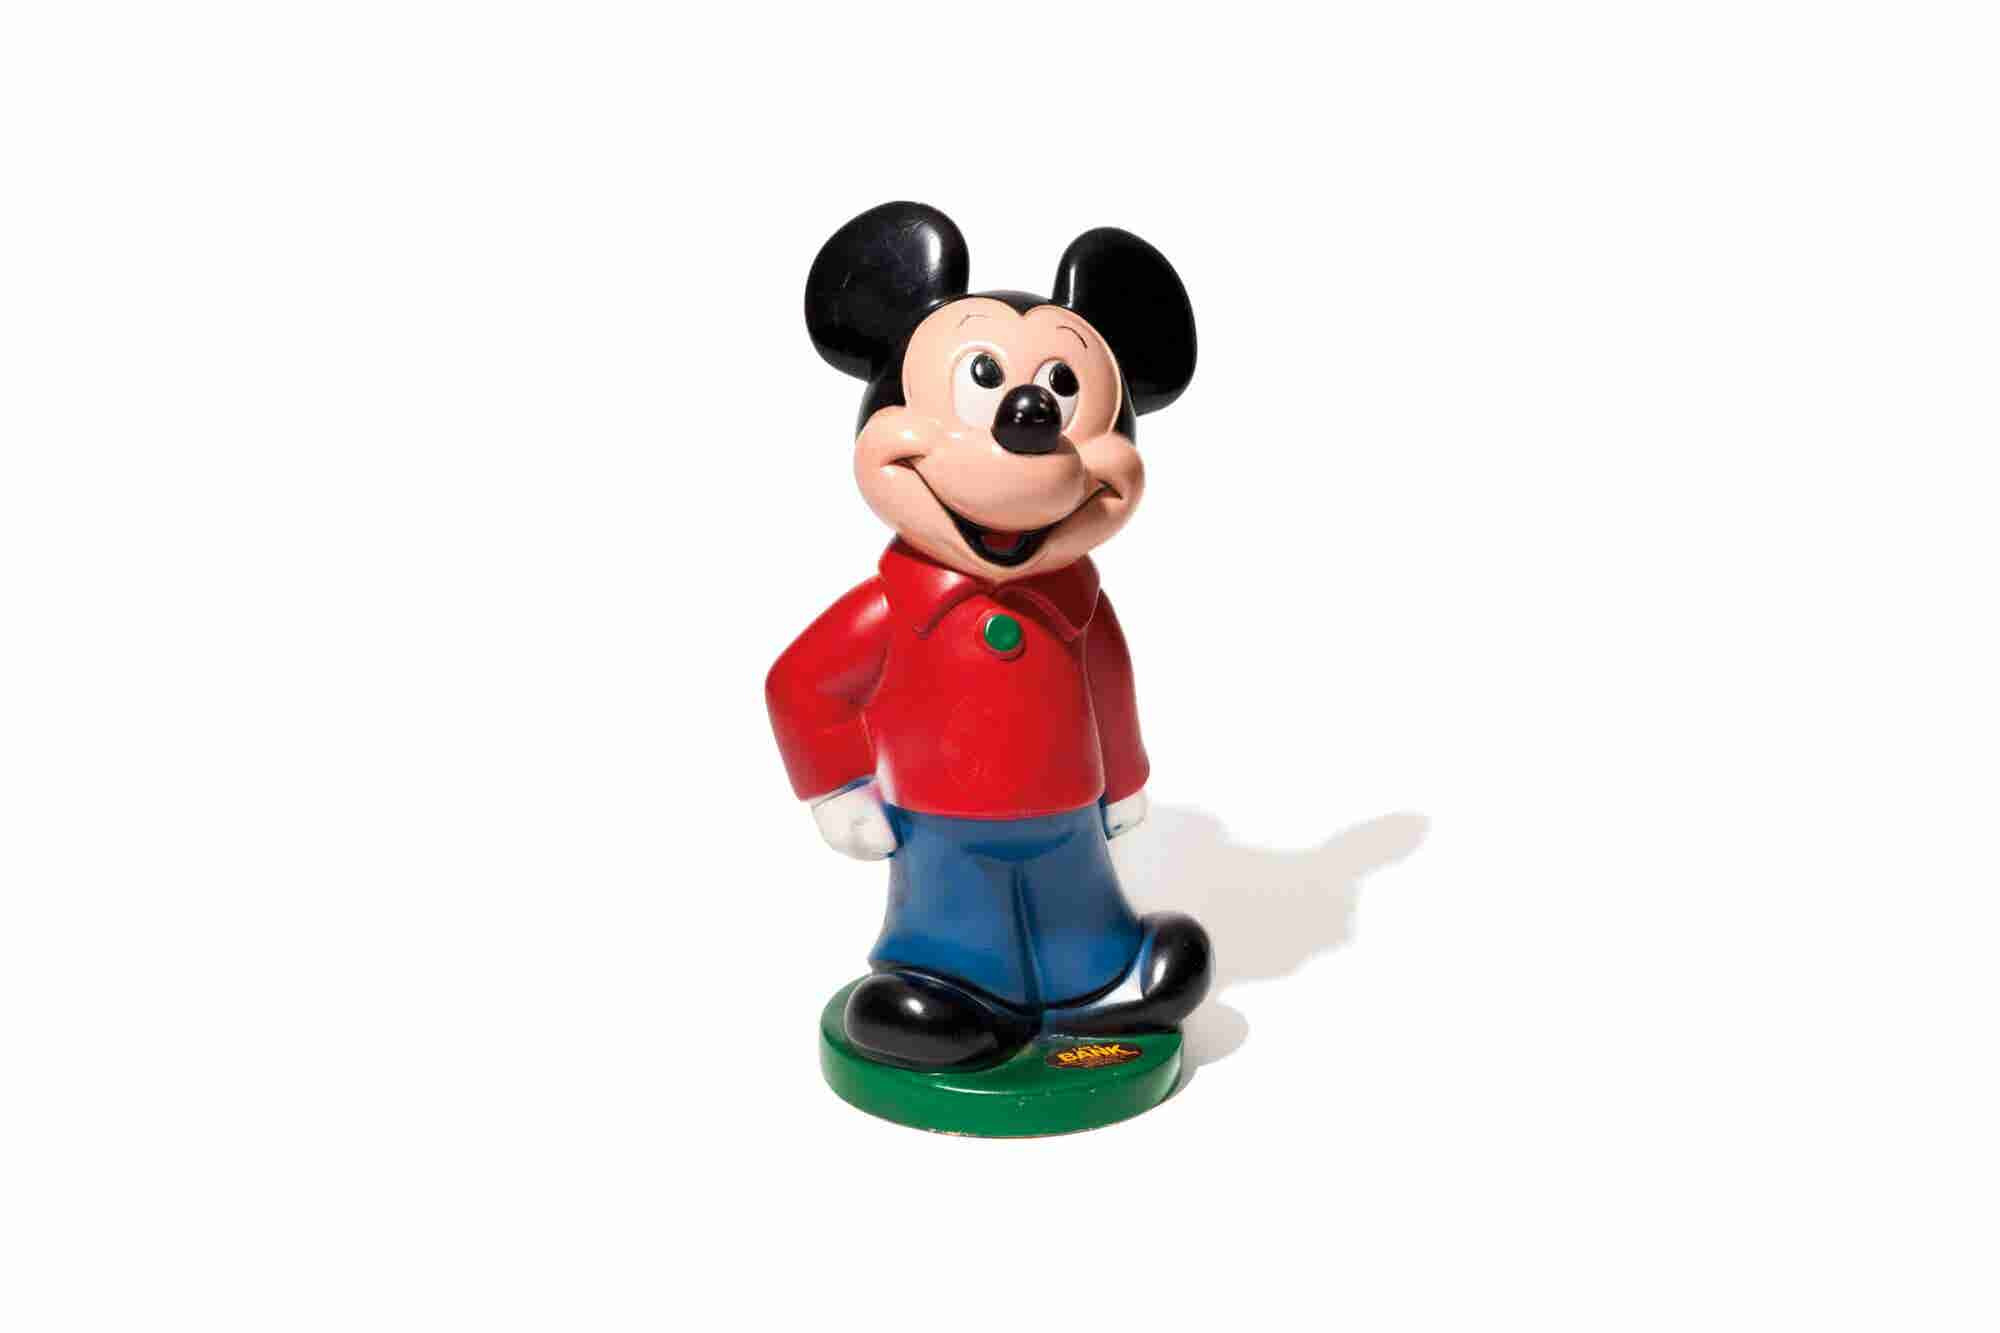 This Mickey Mouse Piggy Bank Reminds This Entrepreneur to Hustle Hard, Every Day